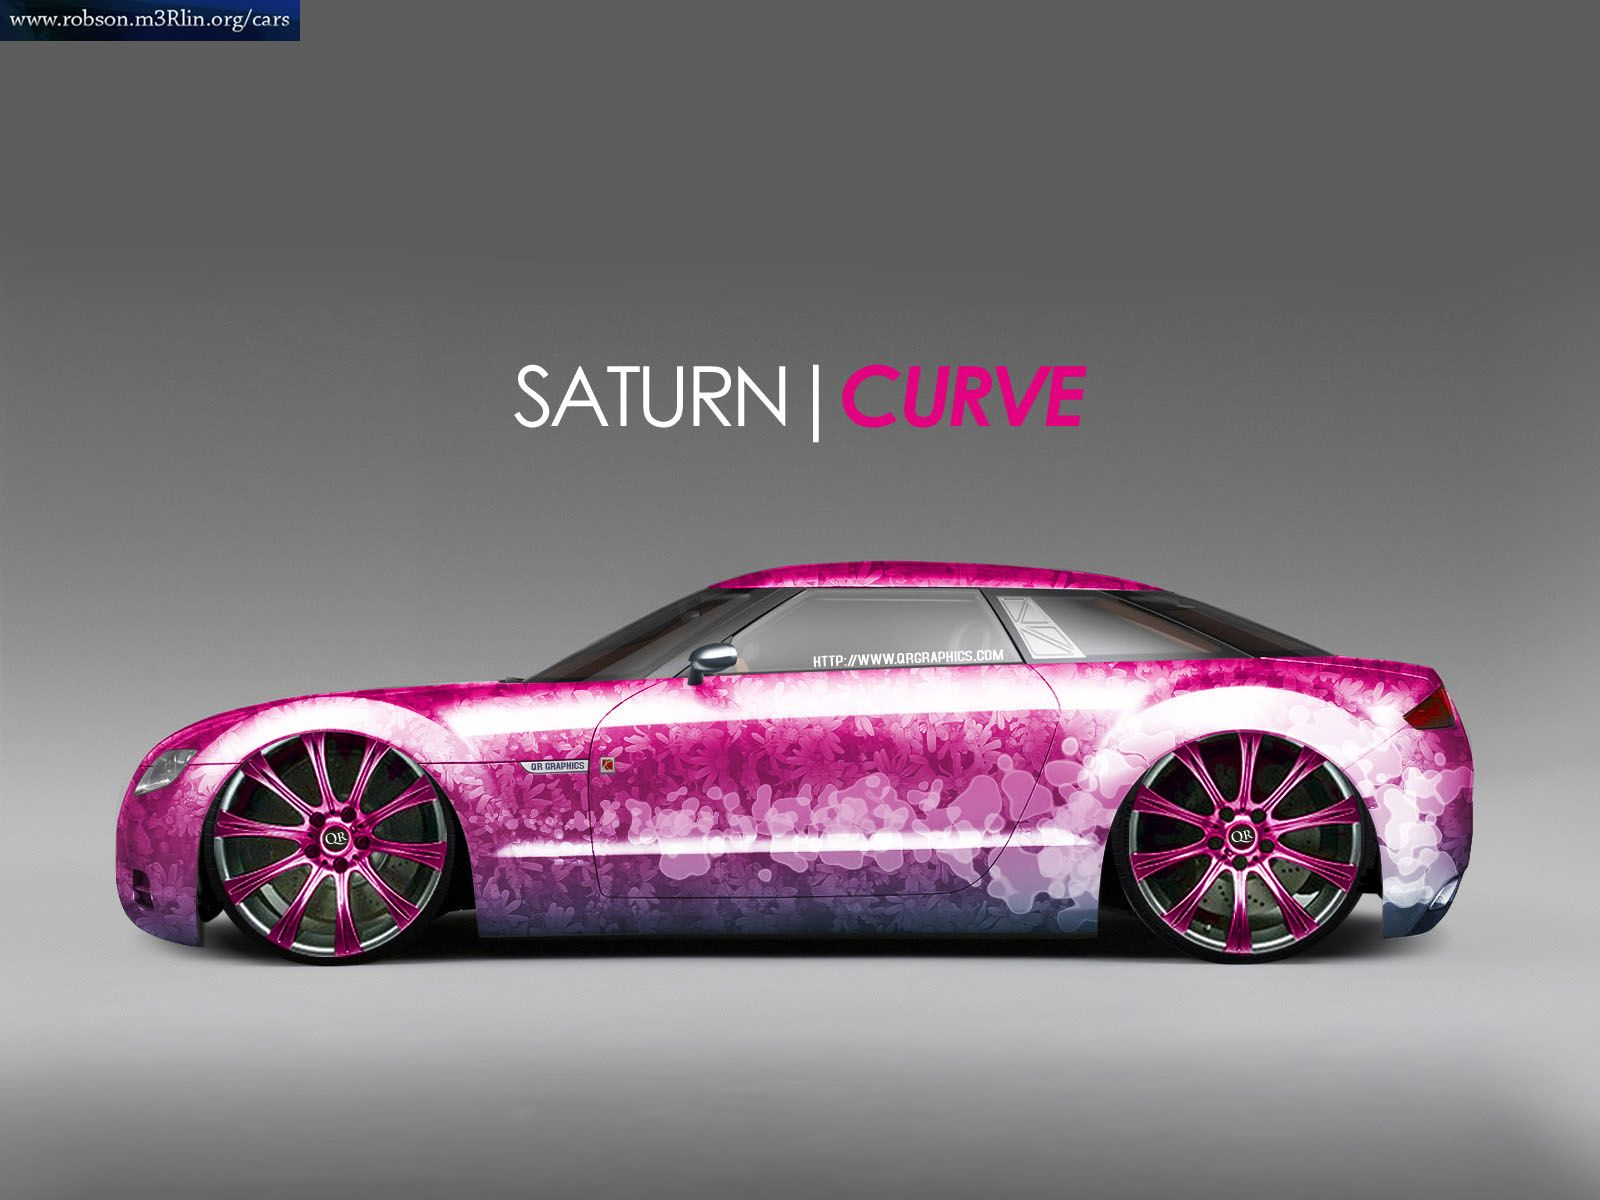 Car Paint Design Ideas props for designing it on a car not only named after a horse but is also the most iconic pony car of all time 1000 Images About Car Paint On Pinterest Car Pictures Crazy Cars And Car Paint Jobs